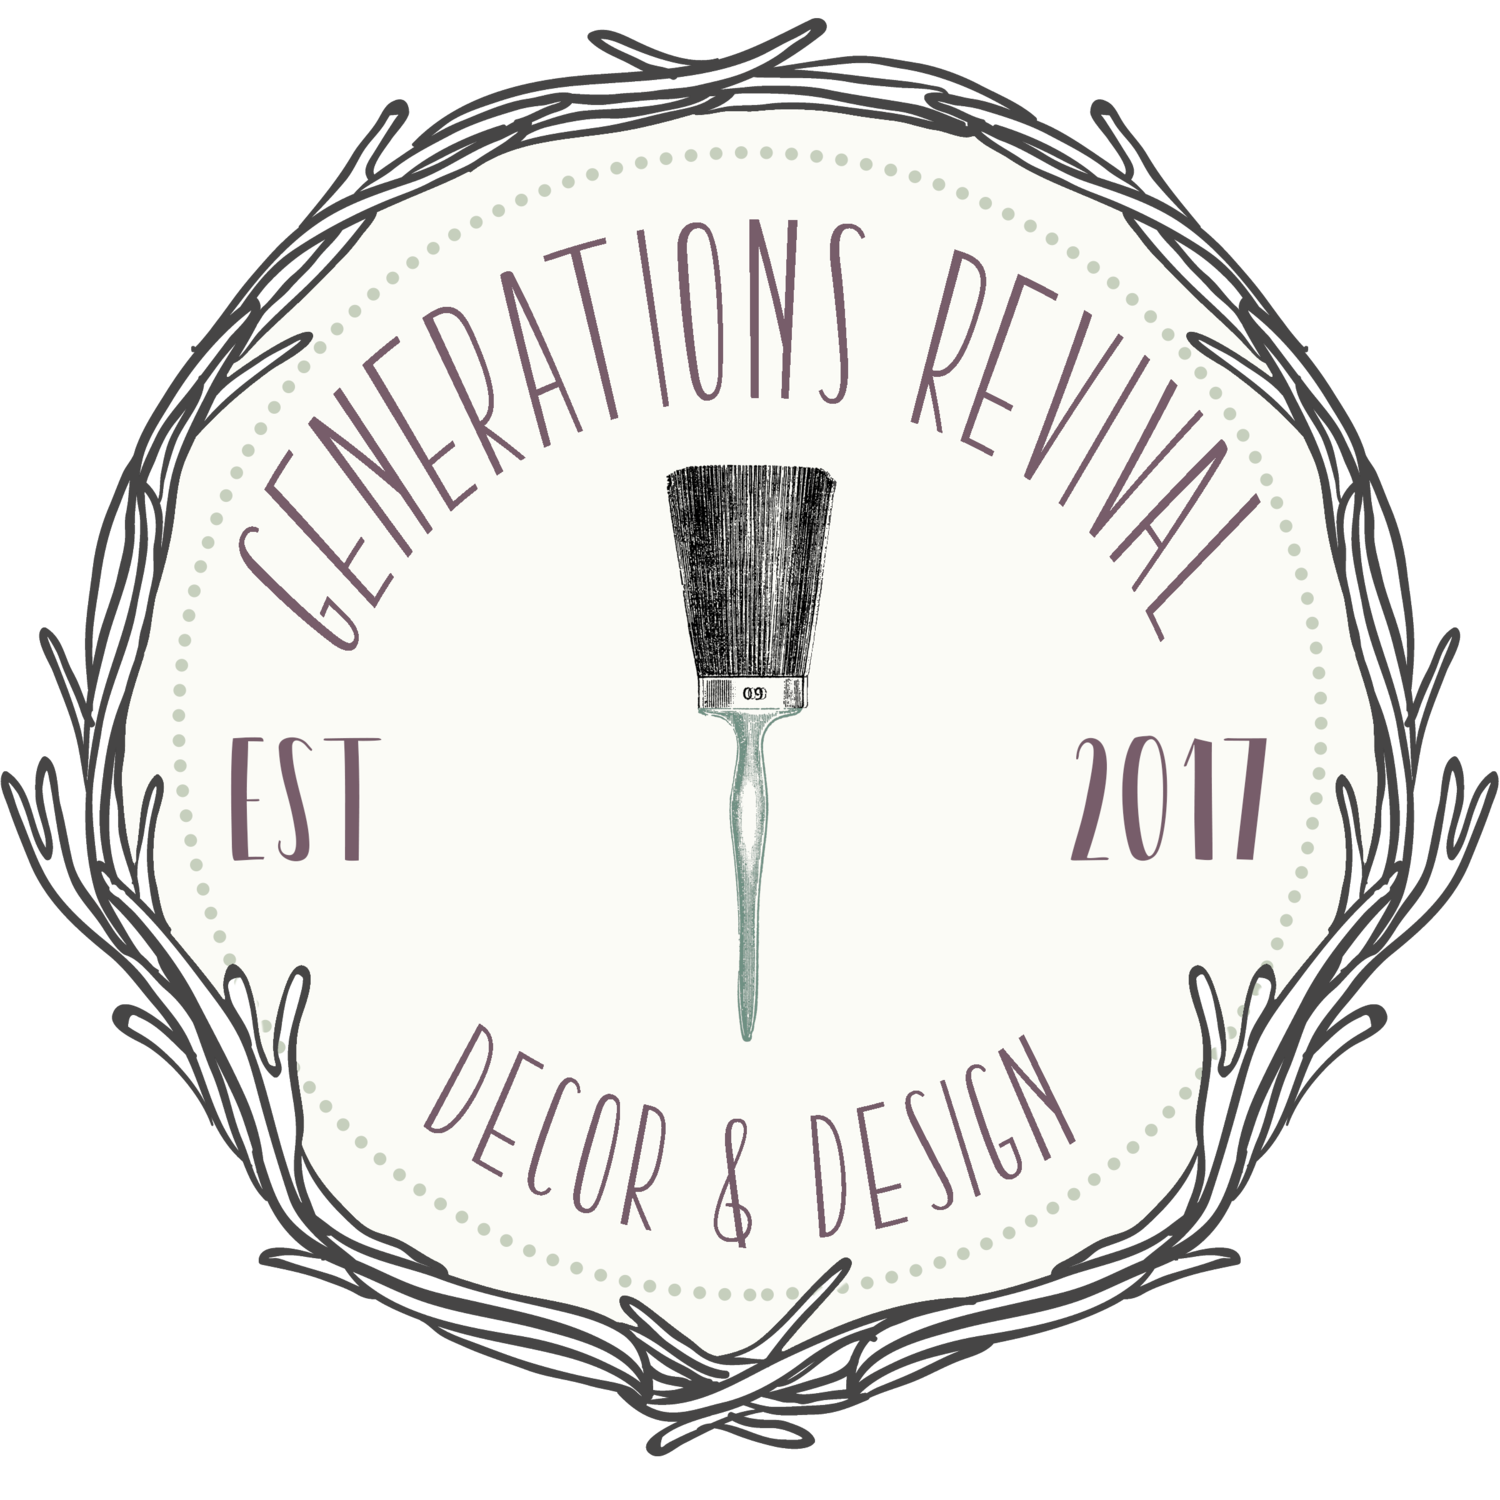 Generations Revival, LLC